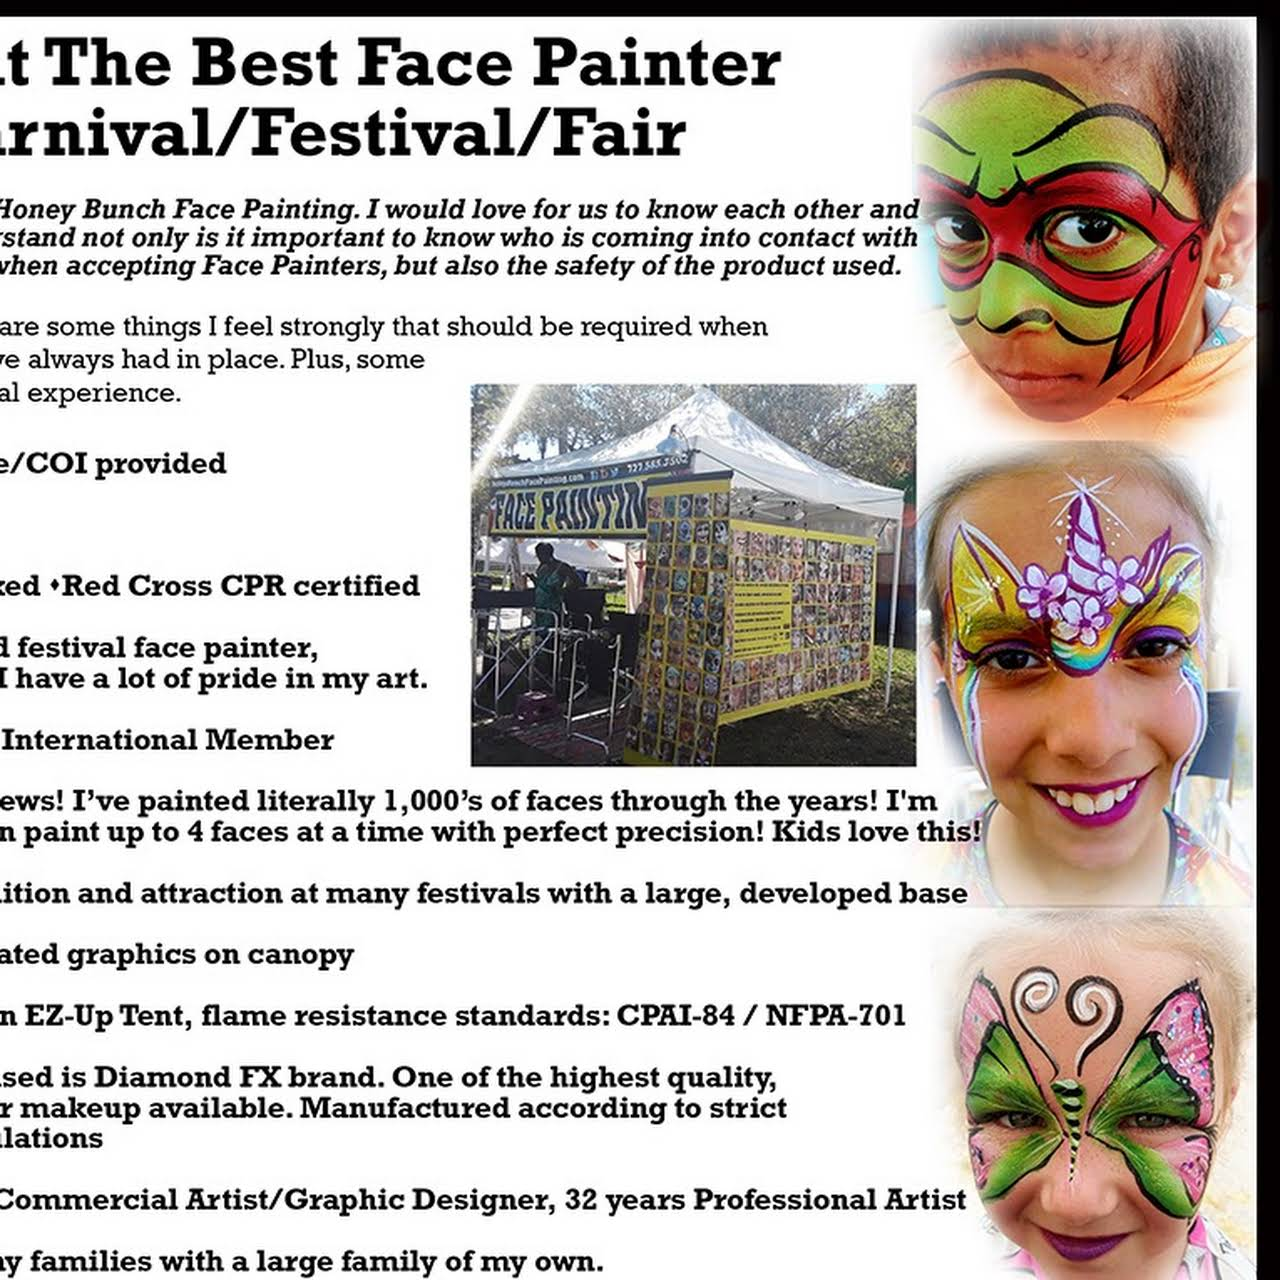 Honey Bunch Face Painting - Body and Face Artist in Madeira Beach